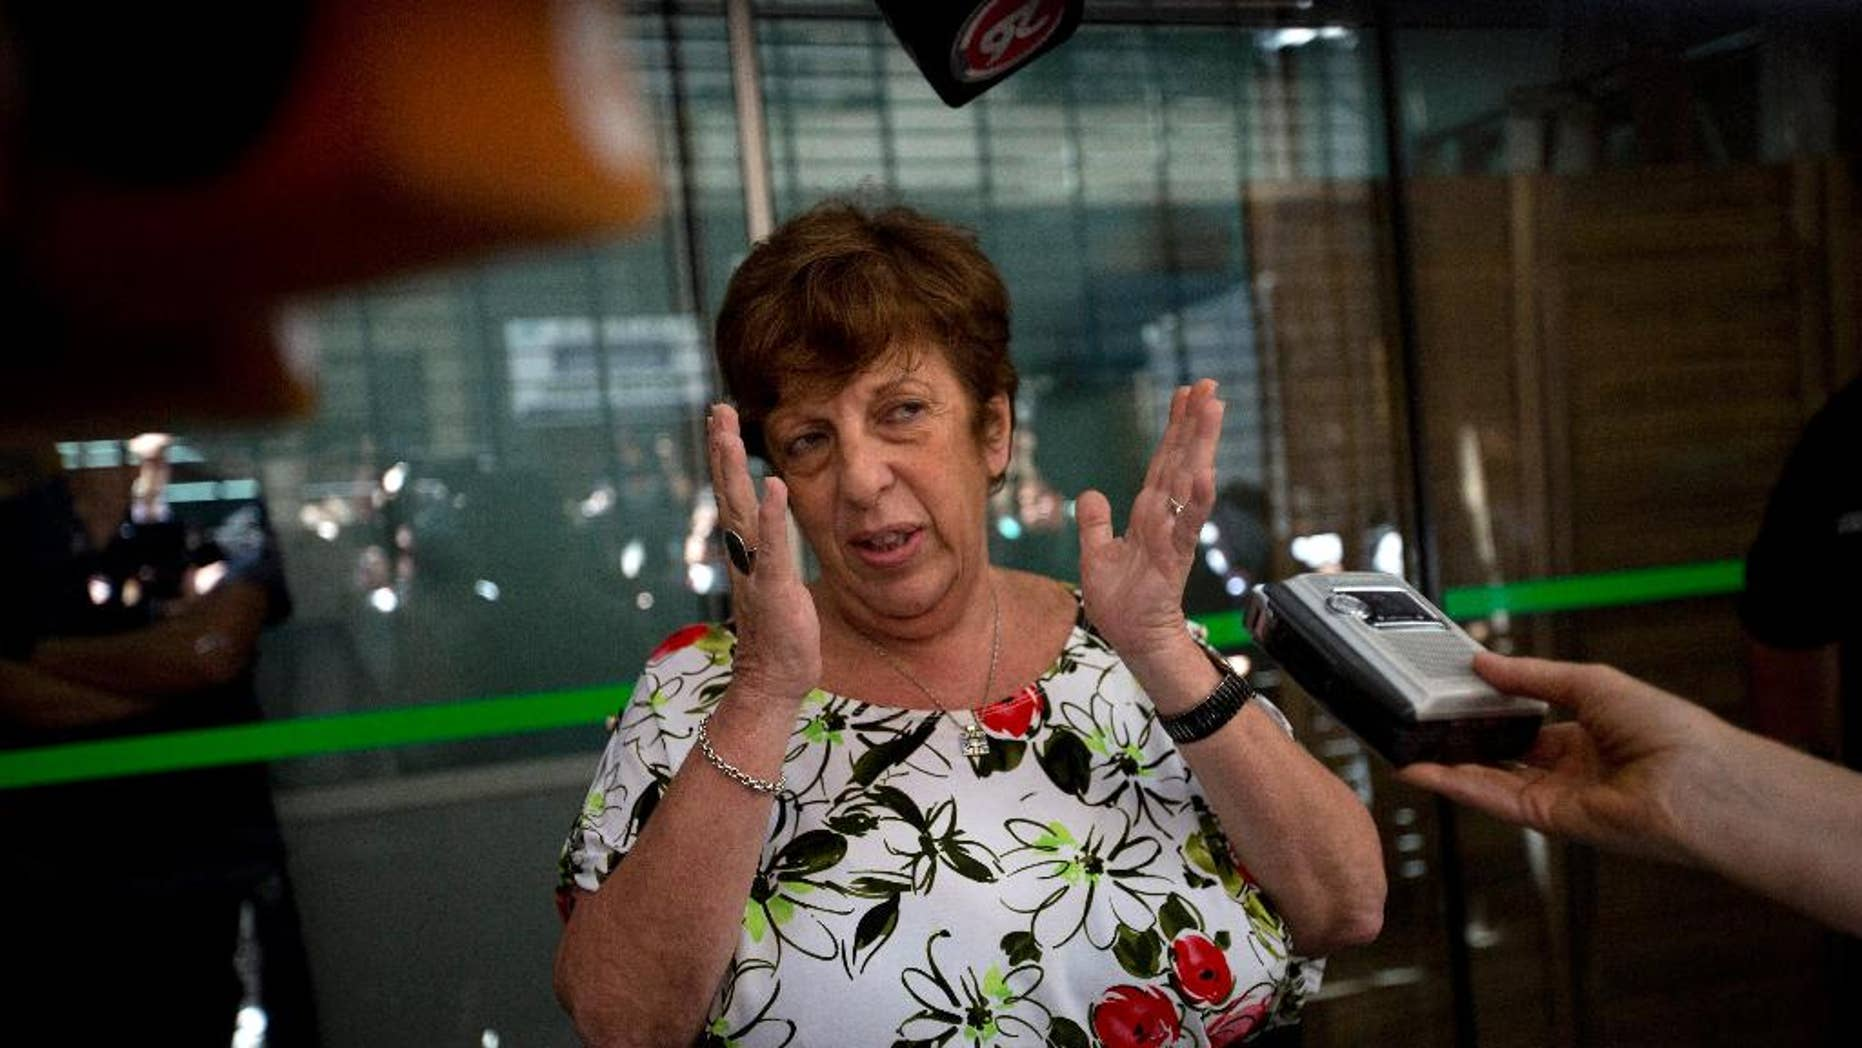 FILE - In this  Jan. 22, 2015, file photo, Viviana Fein, who leads the investigation of prosecutor Alberto Nisman's death, speaks with reporters outside her office, in Buenos Aires, Argentina. Fein the lead investigator in the mysterious death of Nisman who had accused Argentina's president of wrongdoing came under sharp criticism Monday, June 1, 2015, for a video showing police working without latex gloves where Alberto Nisman's body was found. (AP Photo/Rodrigo Abd, File)